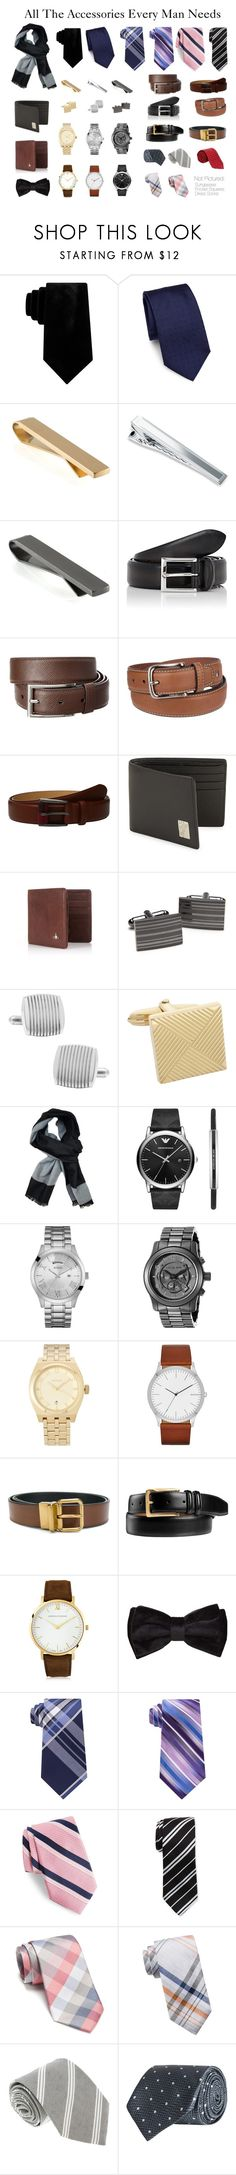 """""""All The Accessories Every Man Needs"""" by hlang4411 on Polyvore featuring Sean John, Salvatore Ferragamo, Würkin Stiffs, Blue Nile, Barneys New York, Prada, Tommy Hilfiger, Ted Baker, Versace and Vivienne Westwood"""